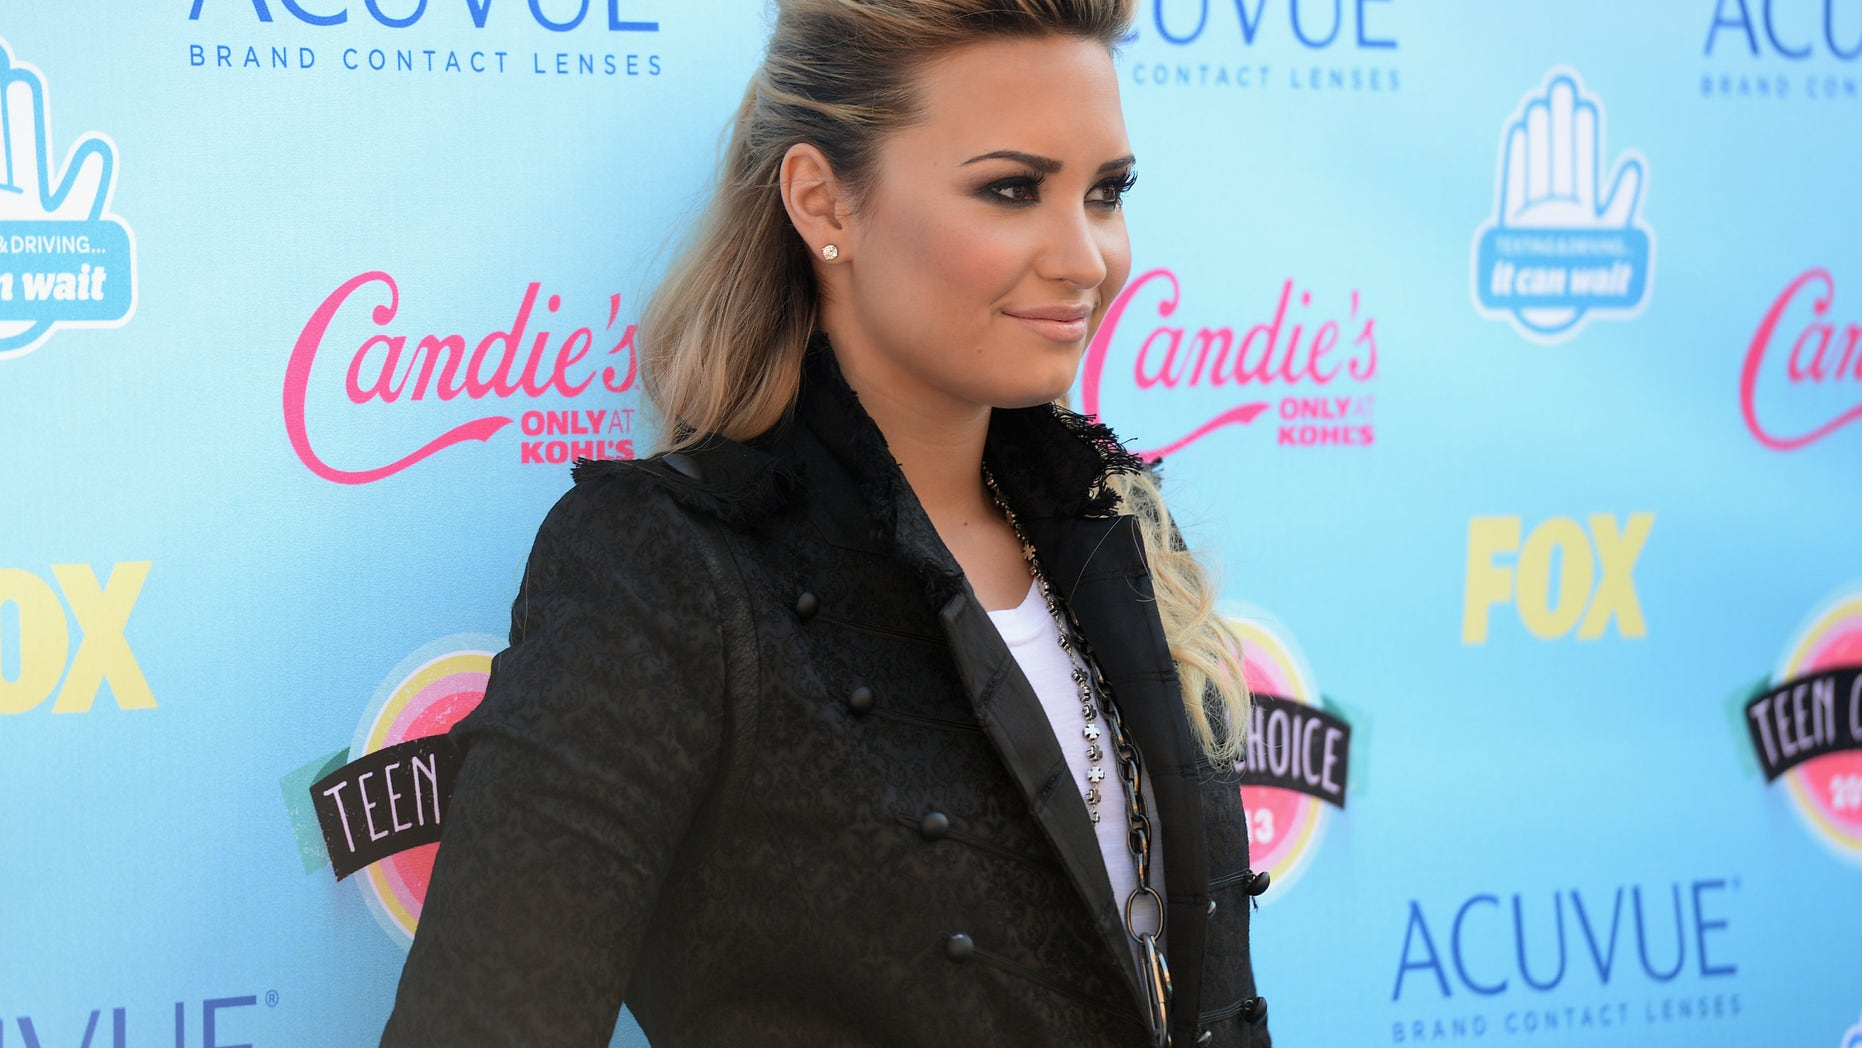 Singer Demi Lovato attends the Teen Choice Awards 2013 at Gibson Amphitheatre on August 11, 2013 in Universal City, California.